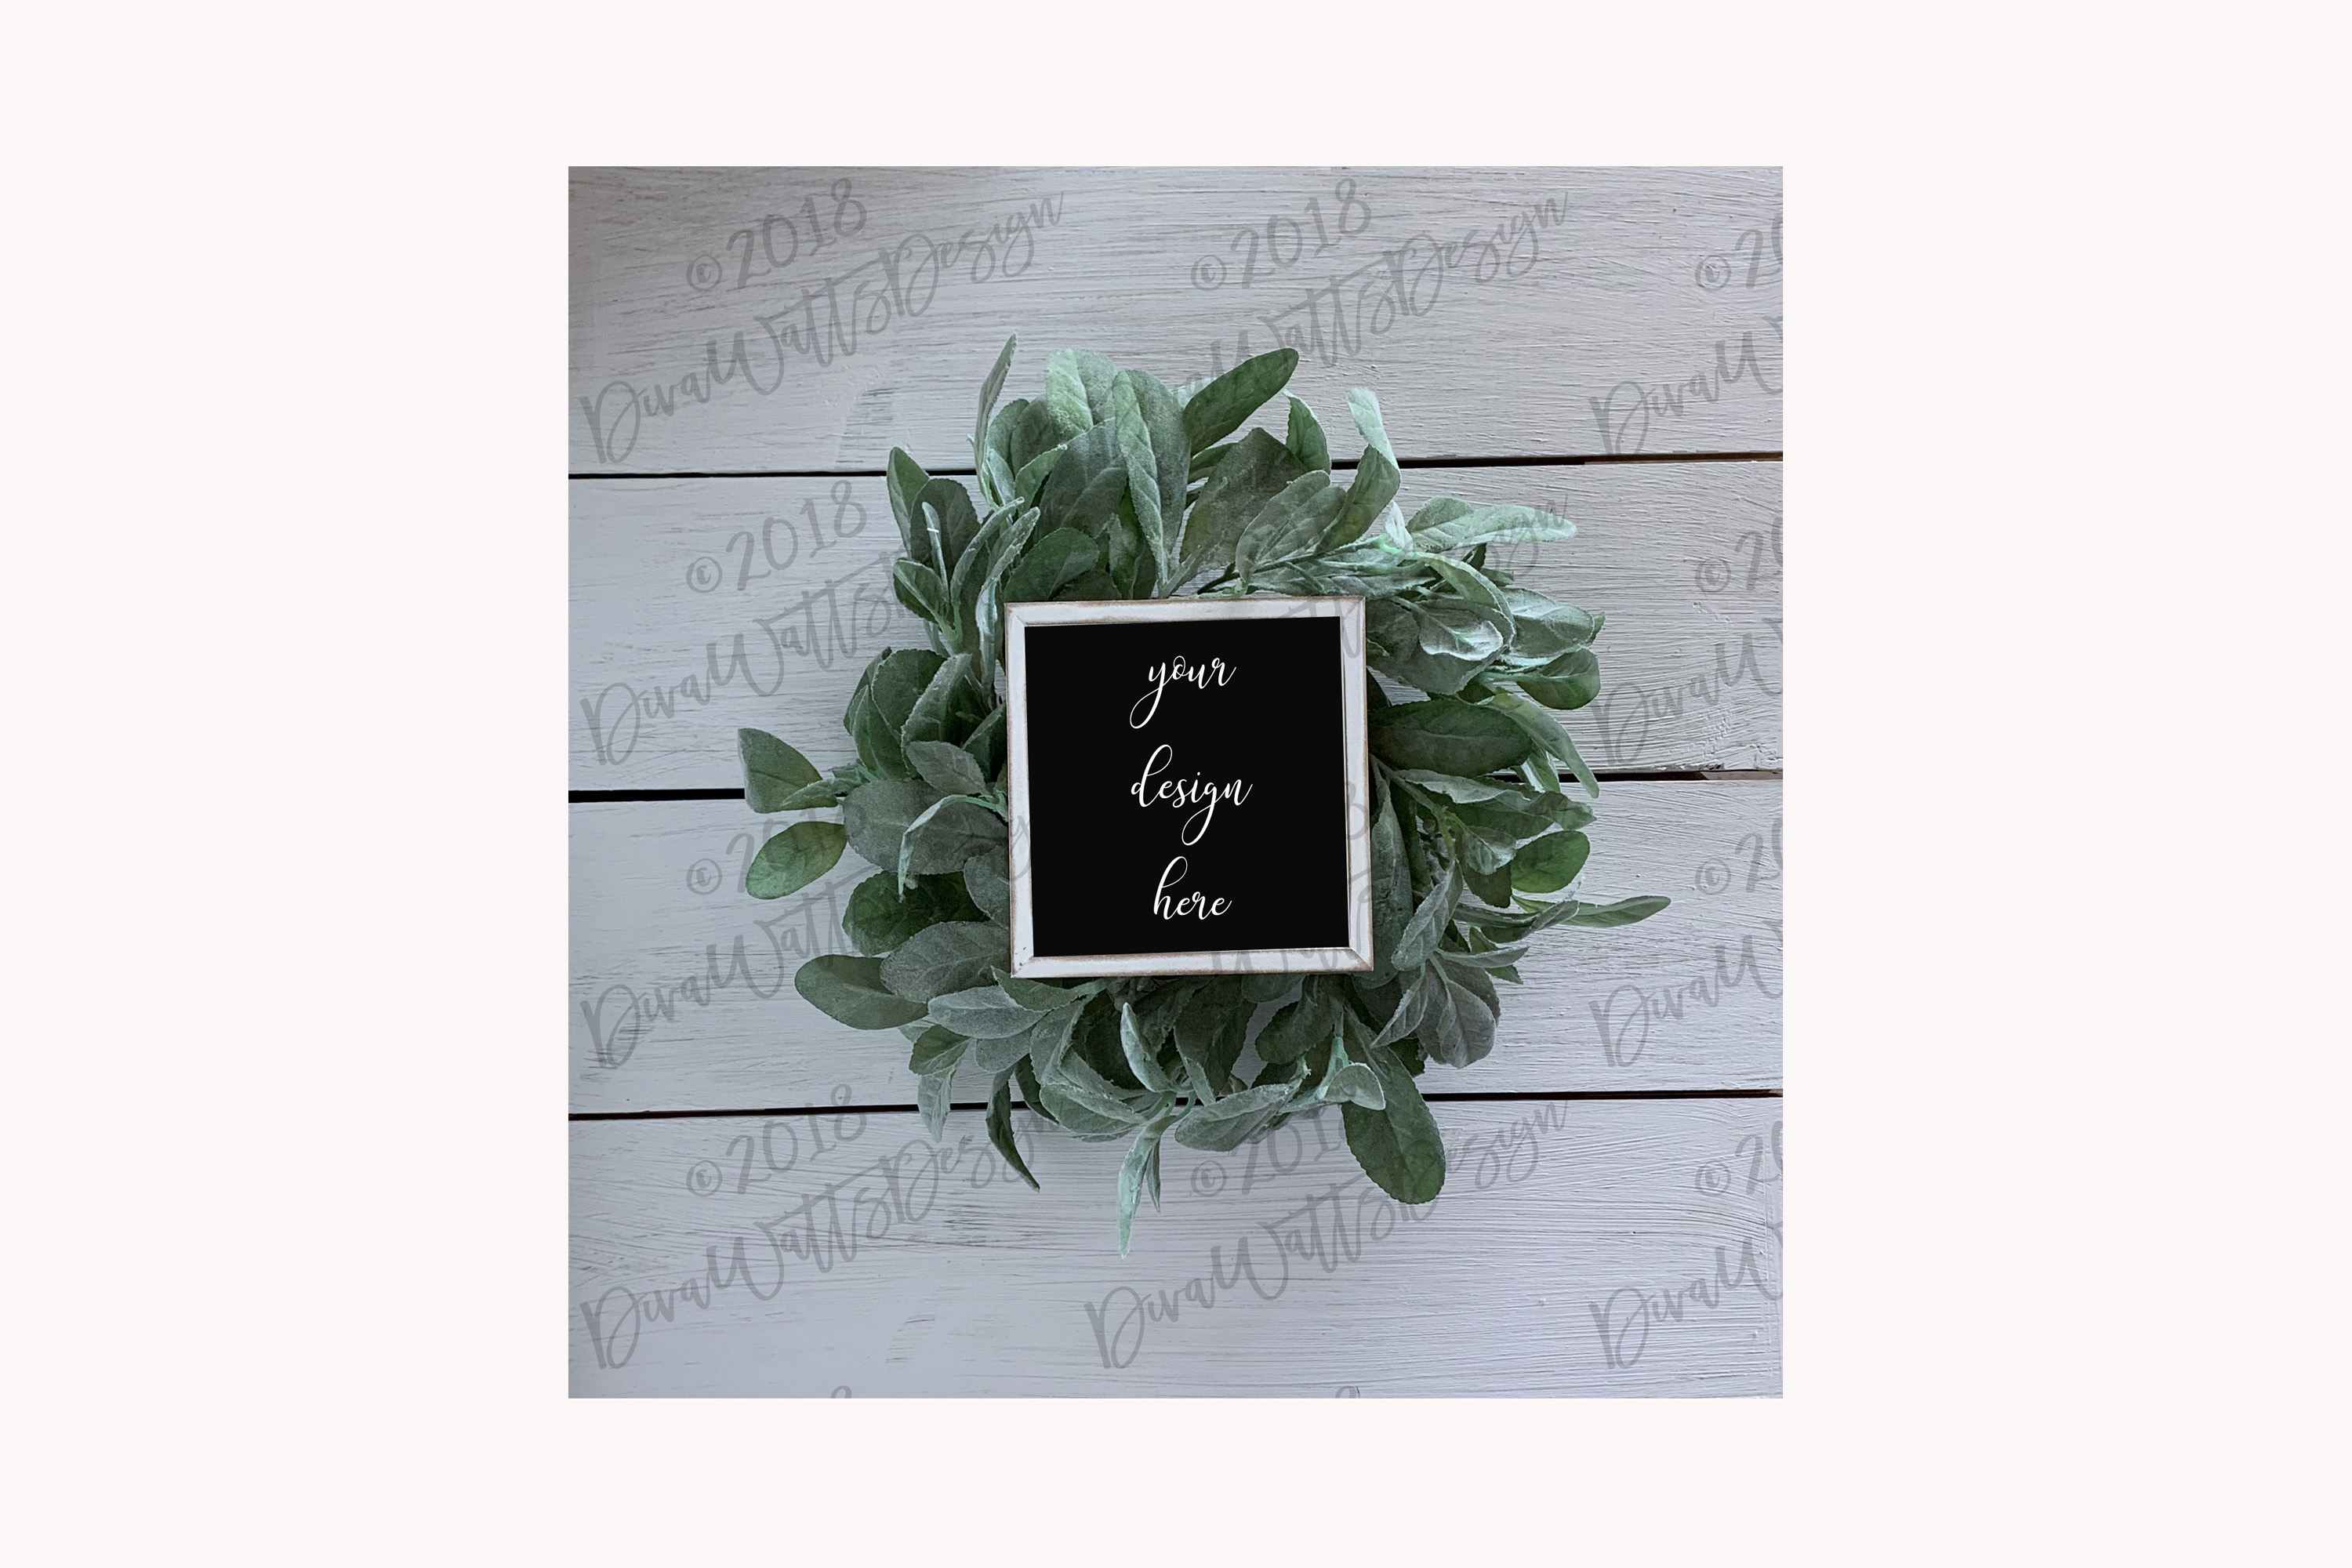 Farmhouse Wood Sign Mockup Mock-up Collection with Shiplap example image 2